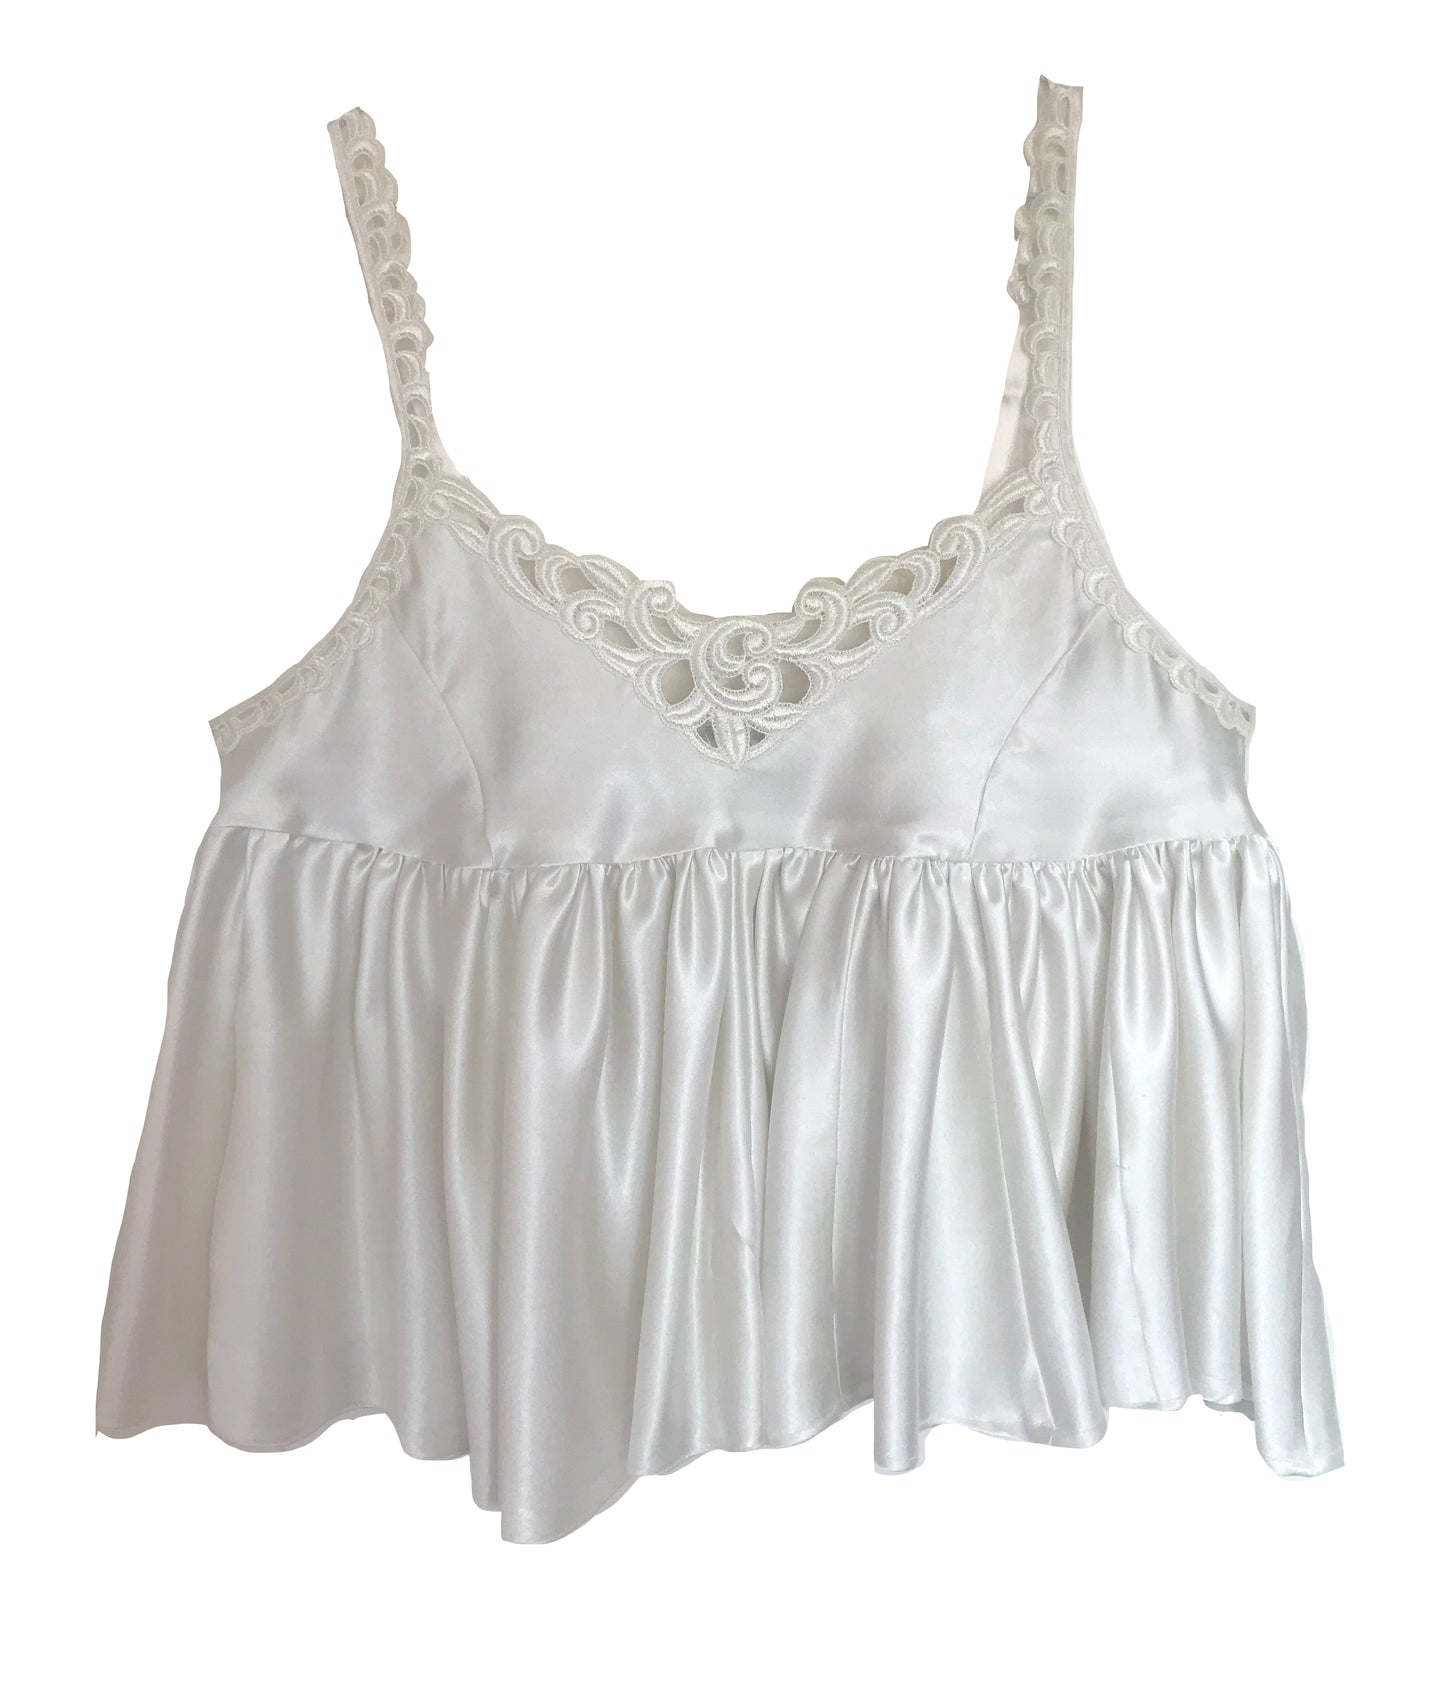 White Satin Vintage Top Uk 16 - 18